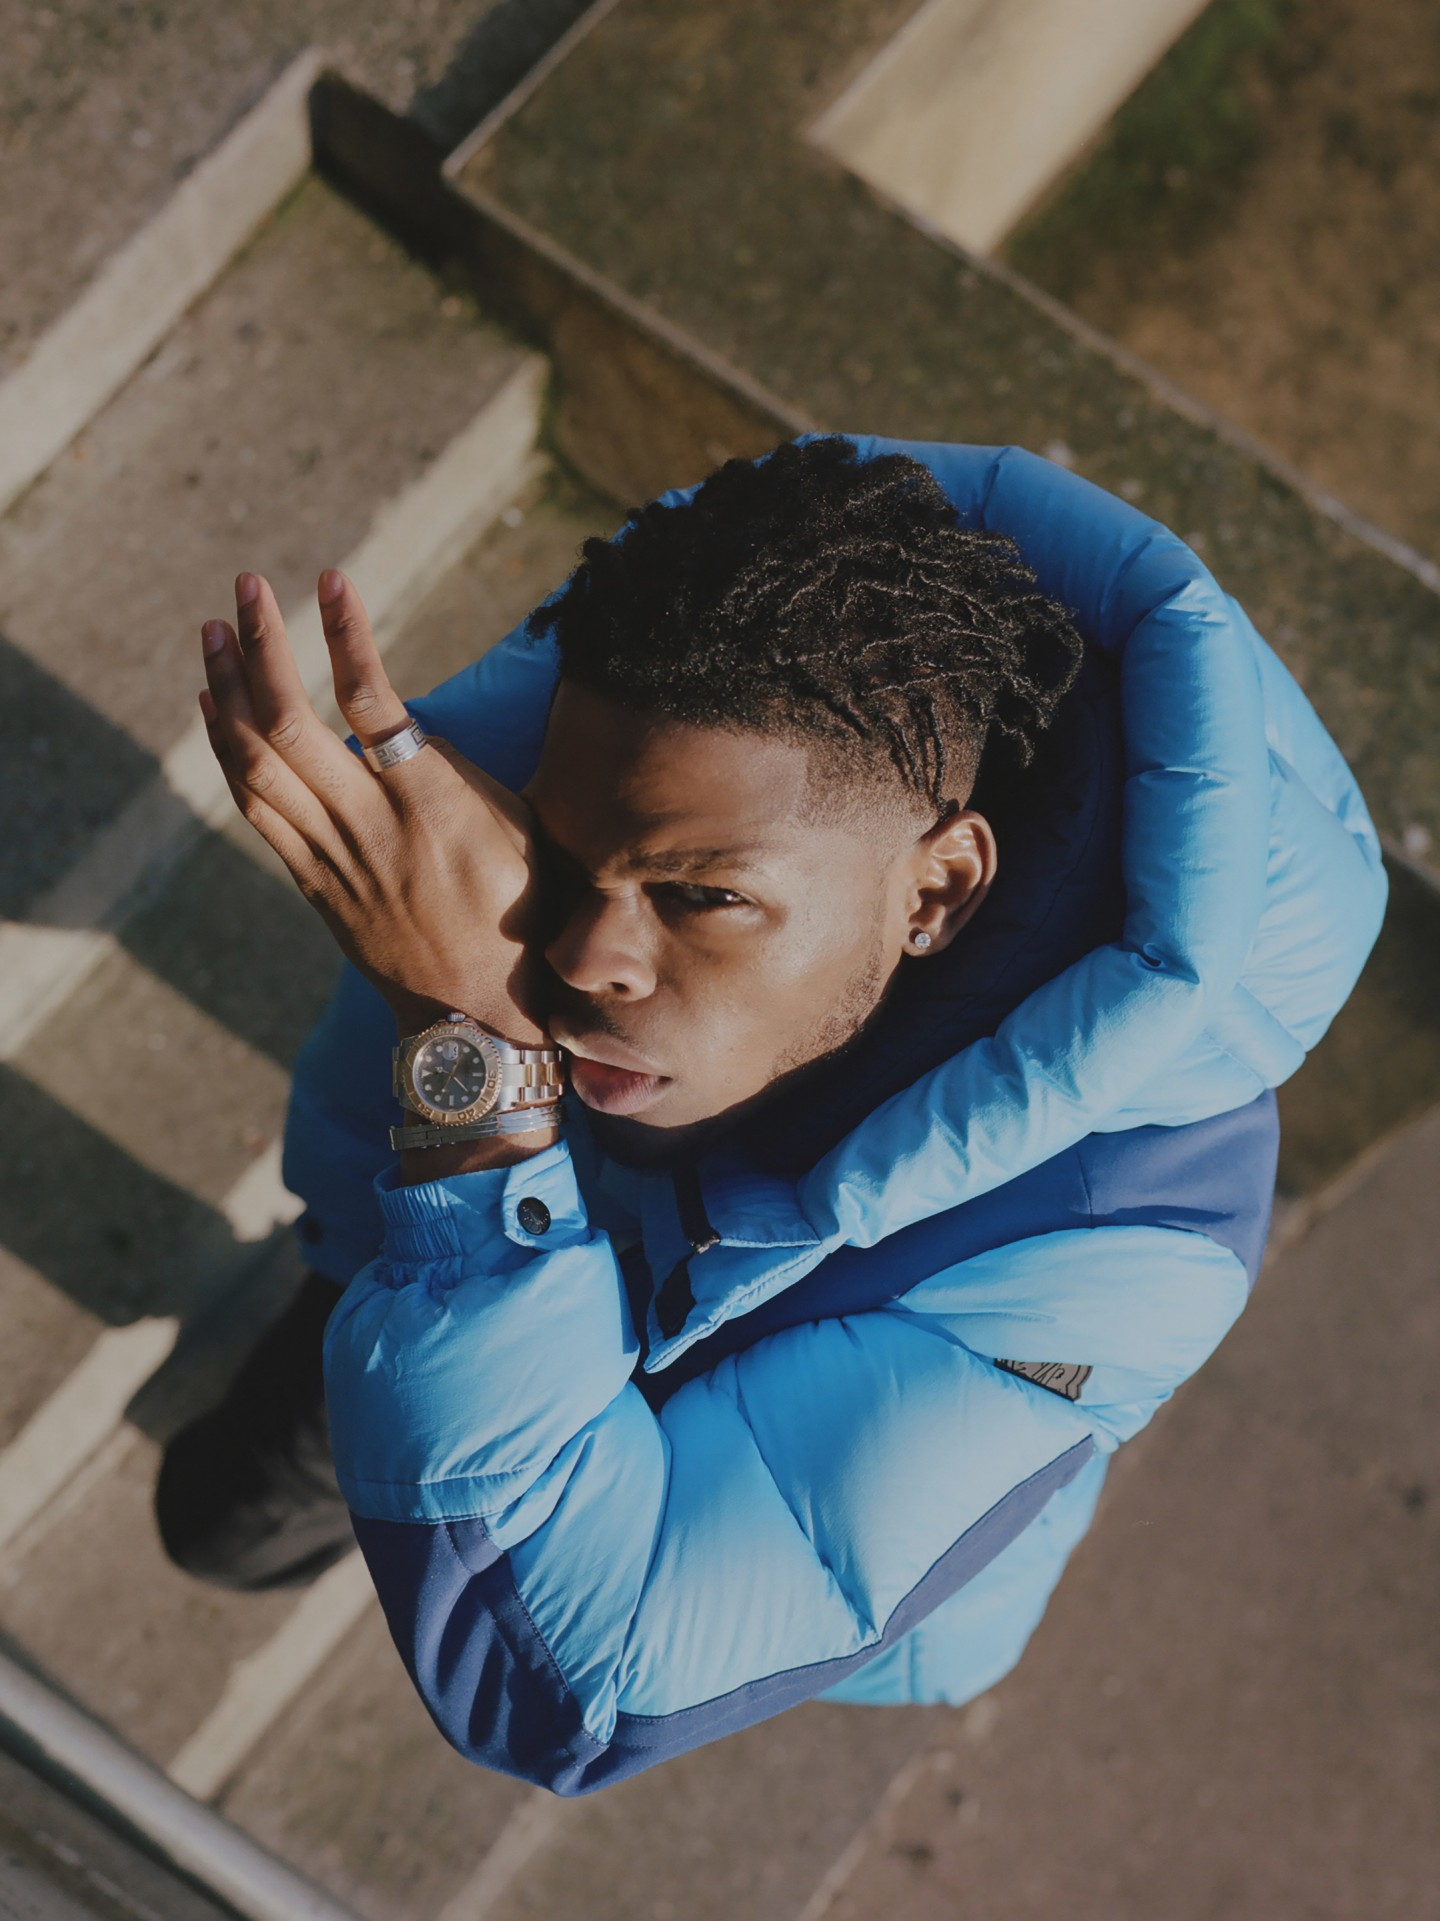 Yxng Bane Conquered His Shyness By Creating Flirtatious